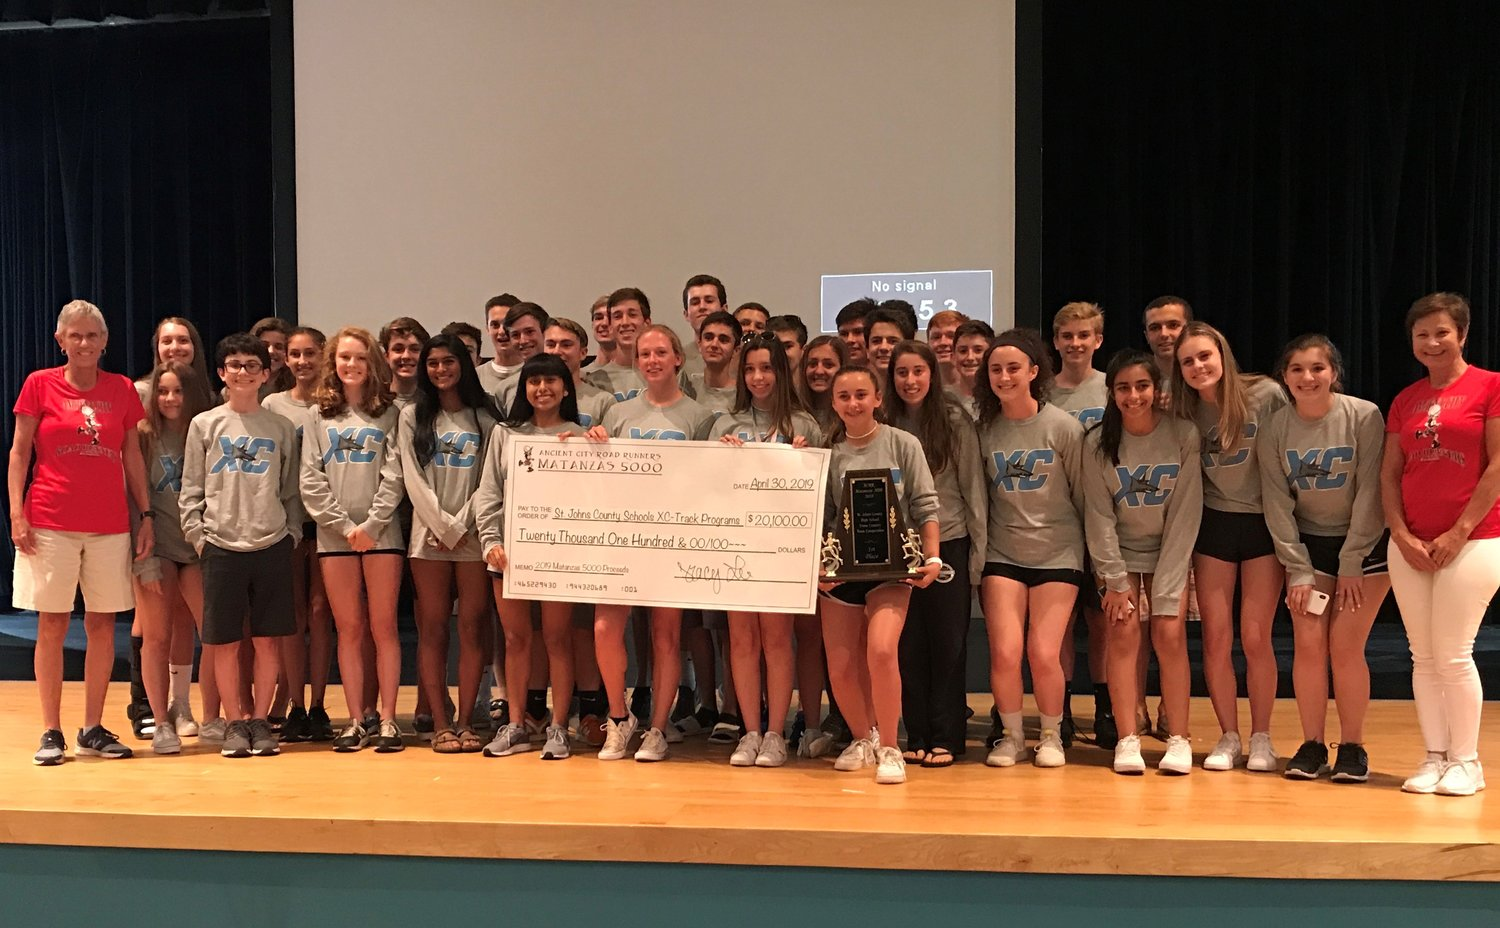 The Matanzas 5000 team presents a check for $20,100 to St. Johns County high school and middle school cross country and track programs.